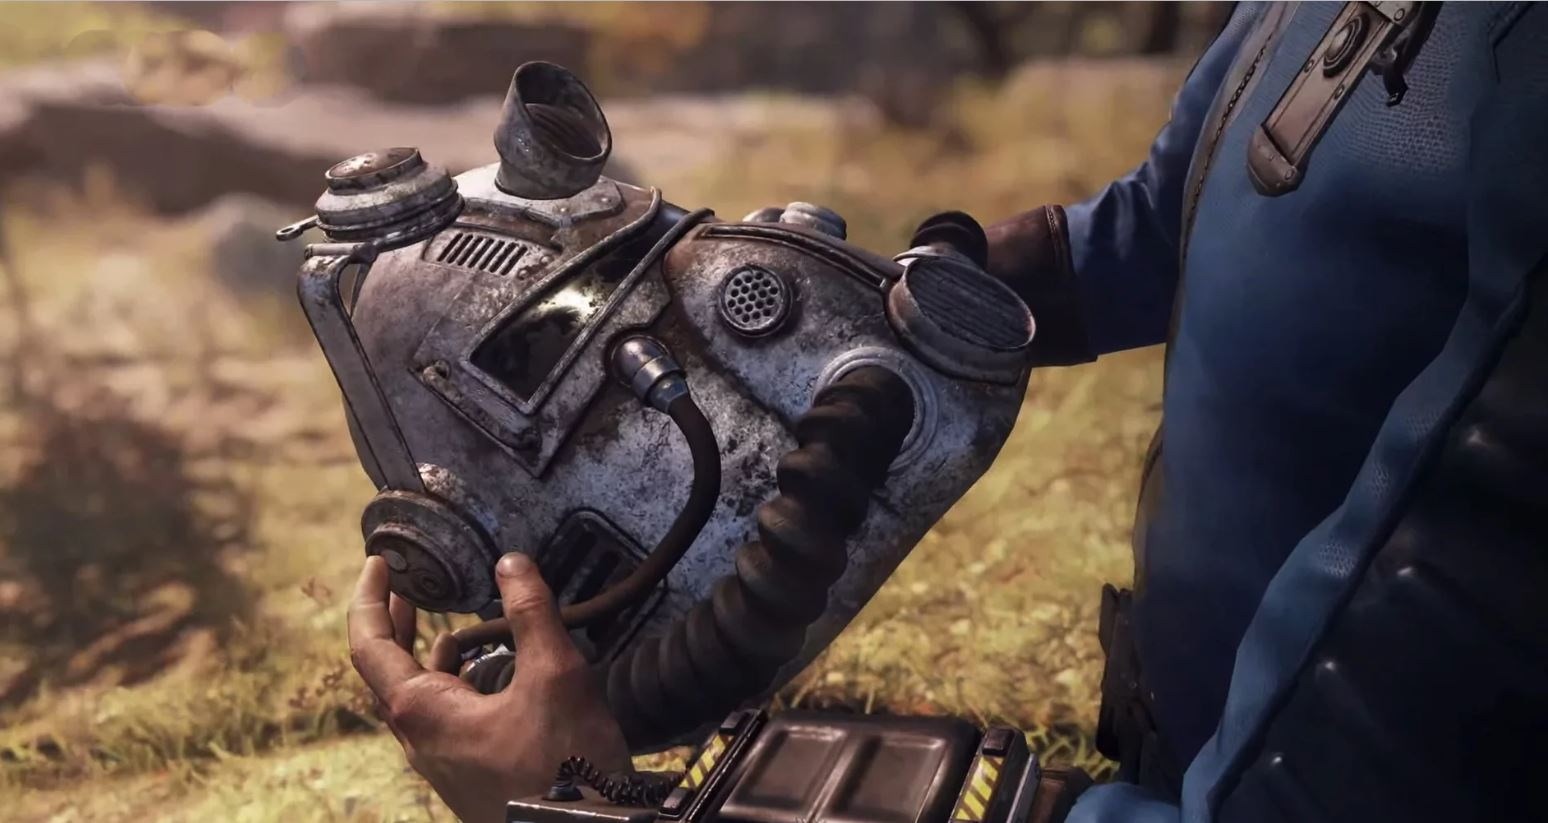 Fallout 76 Nuka-Cola helmet recalled over mold